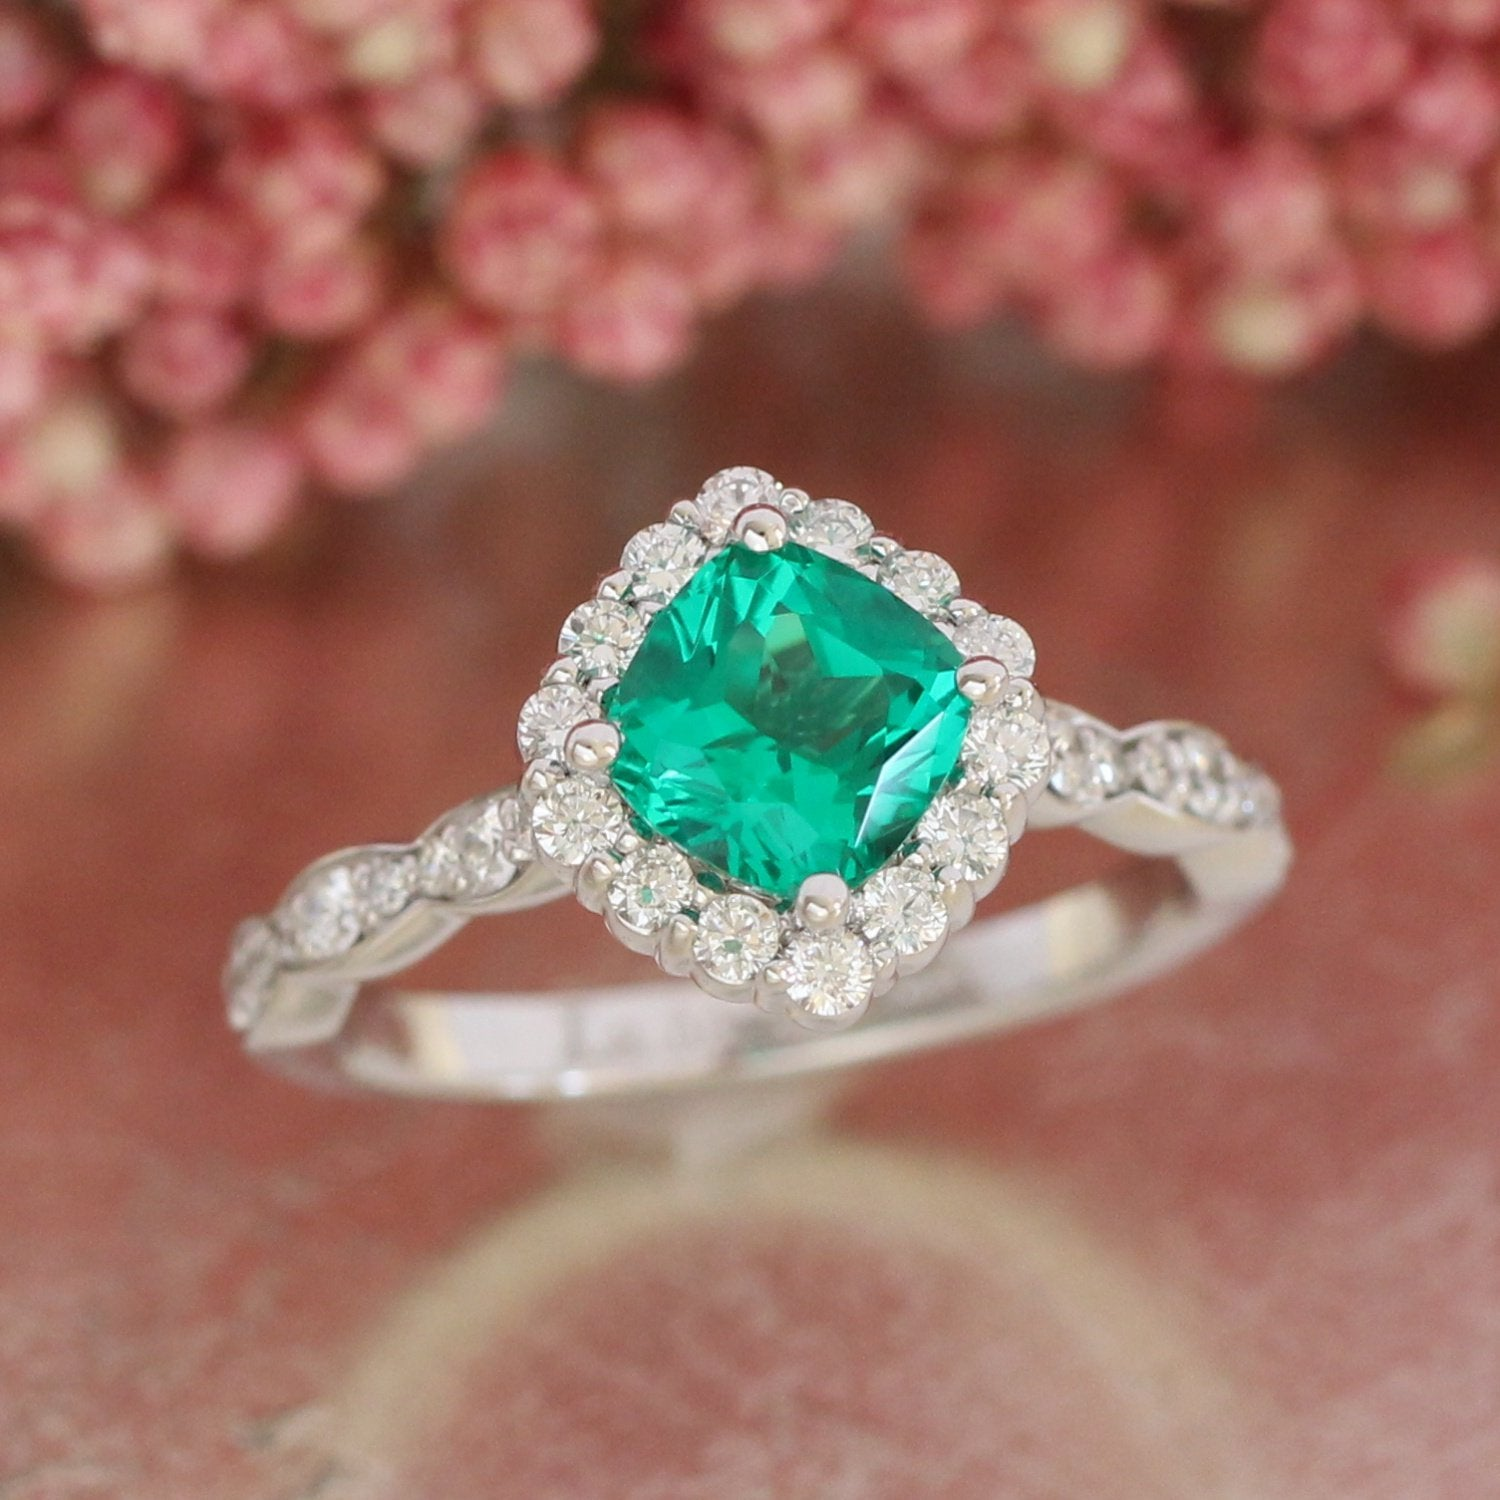 j fullxfull band il pave product r dlpa ring emerald engagement cushion jewels natural with engagment diamond cut